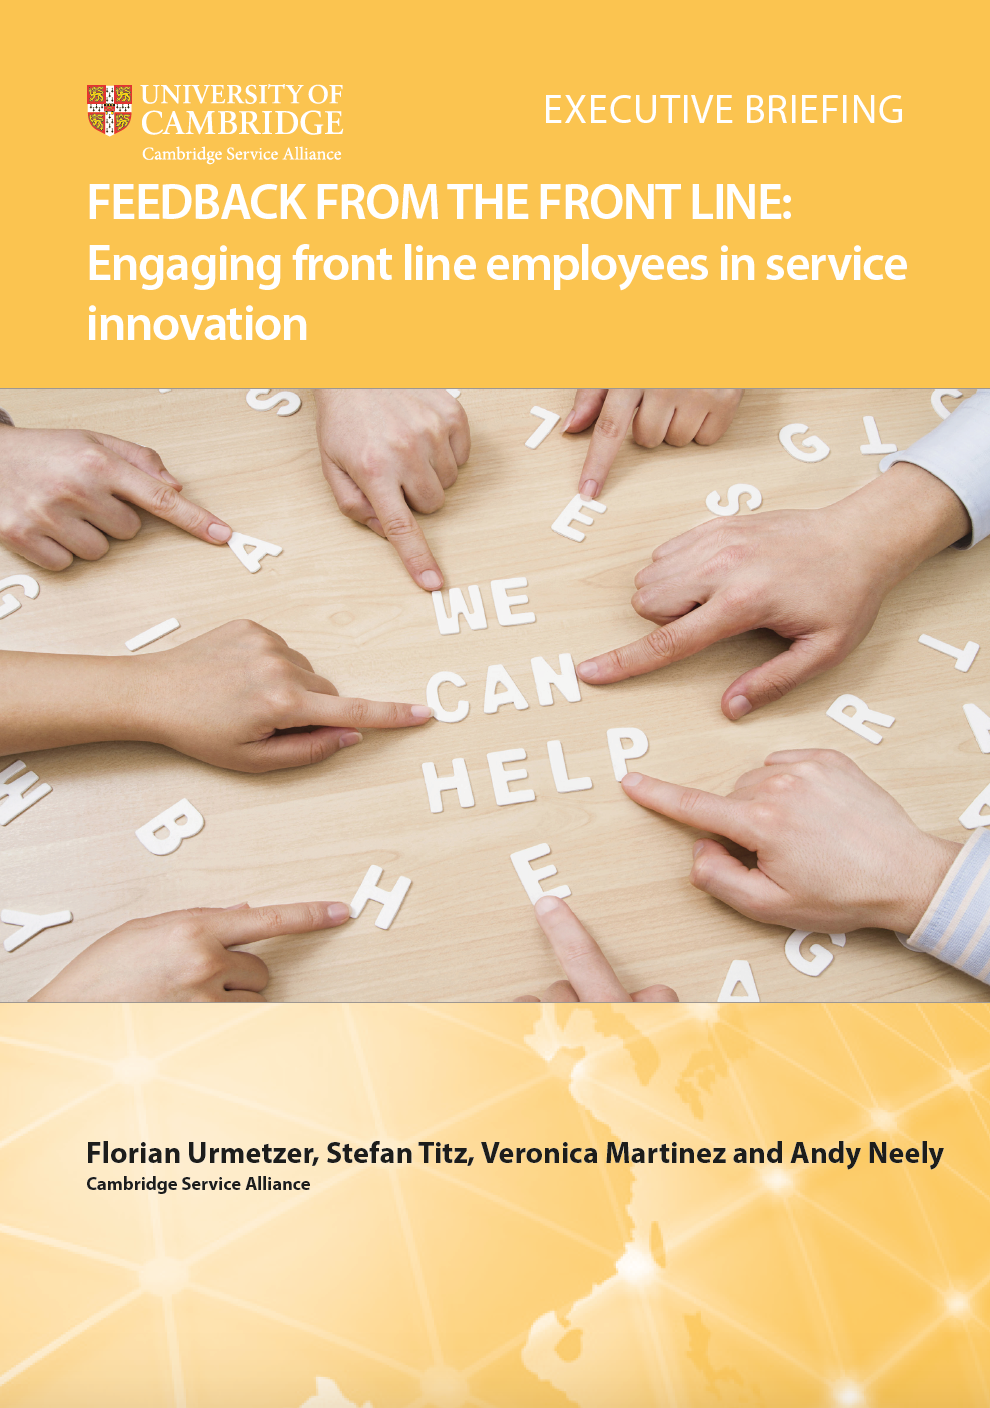 Feedback from the Frontline: Engaging front-line employees in service innovation